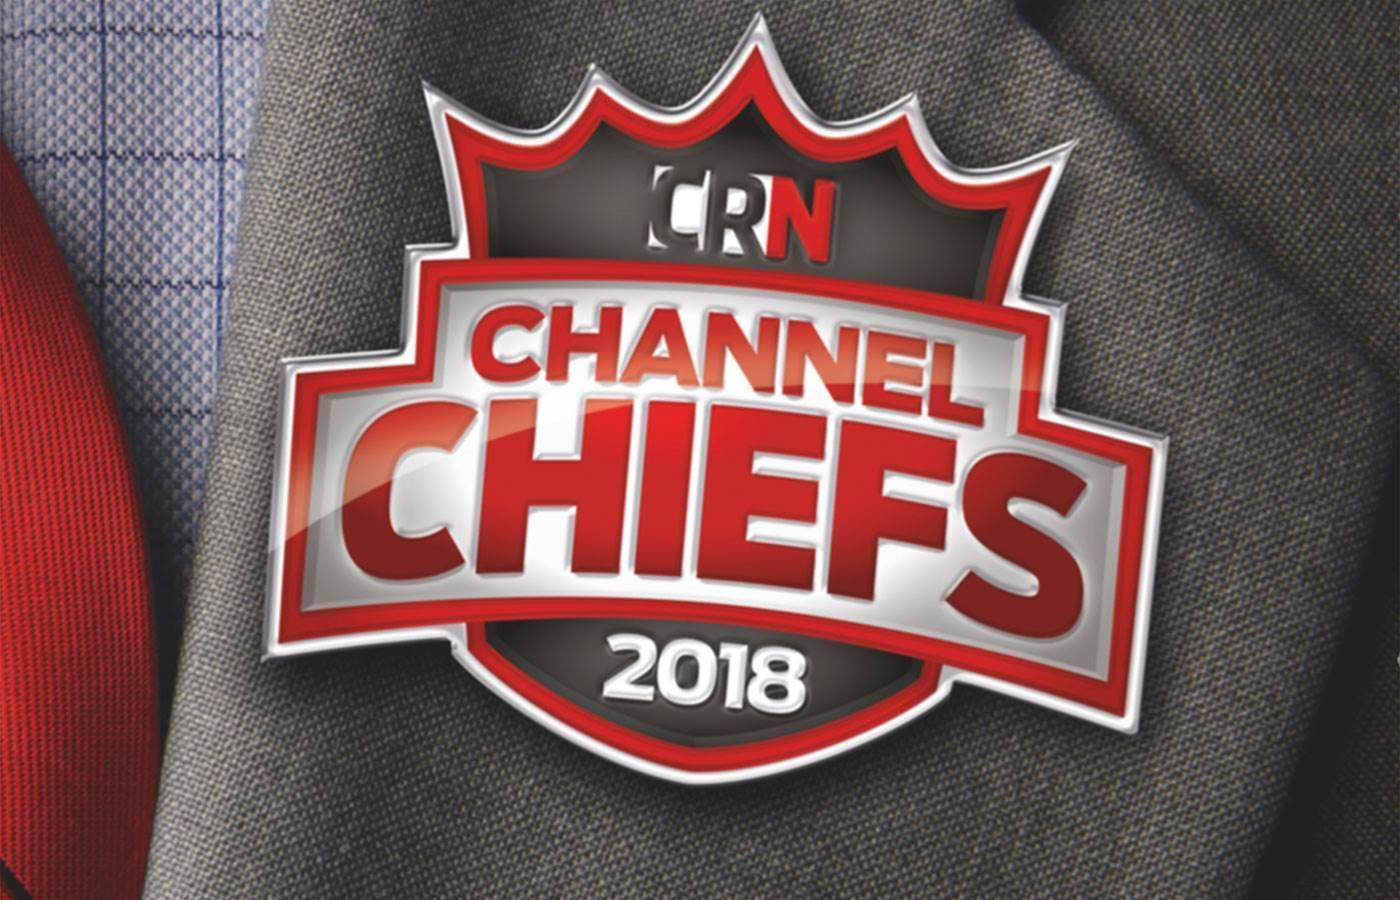 Get to know Australia's top channel chiefs!